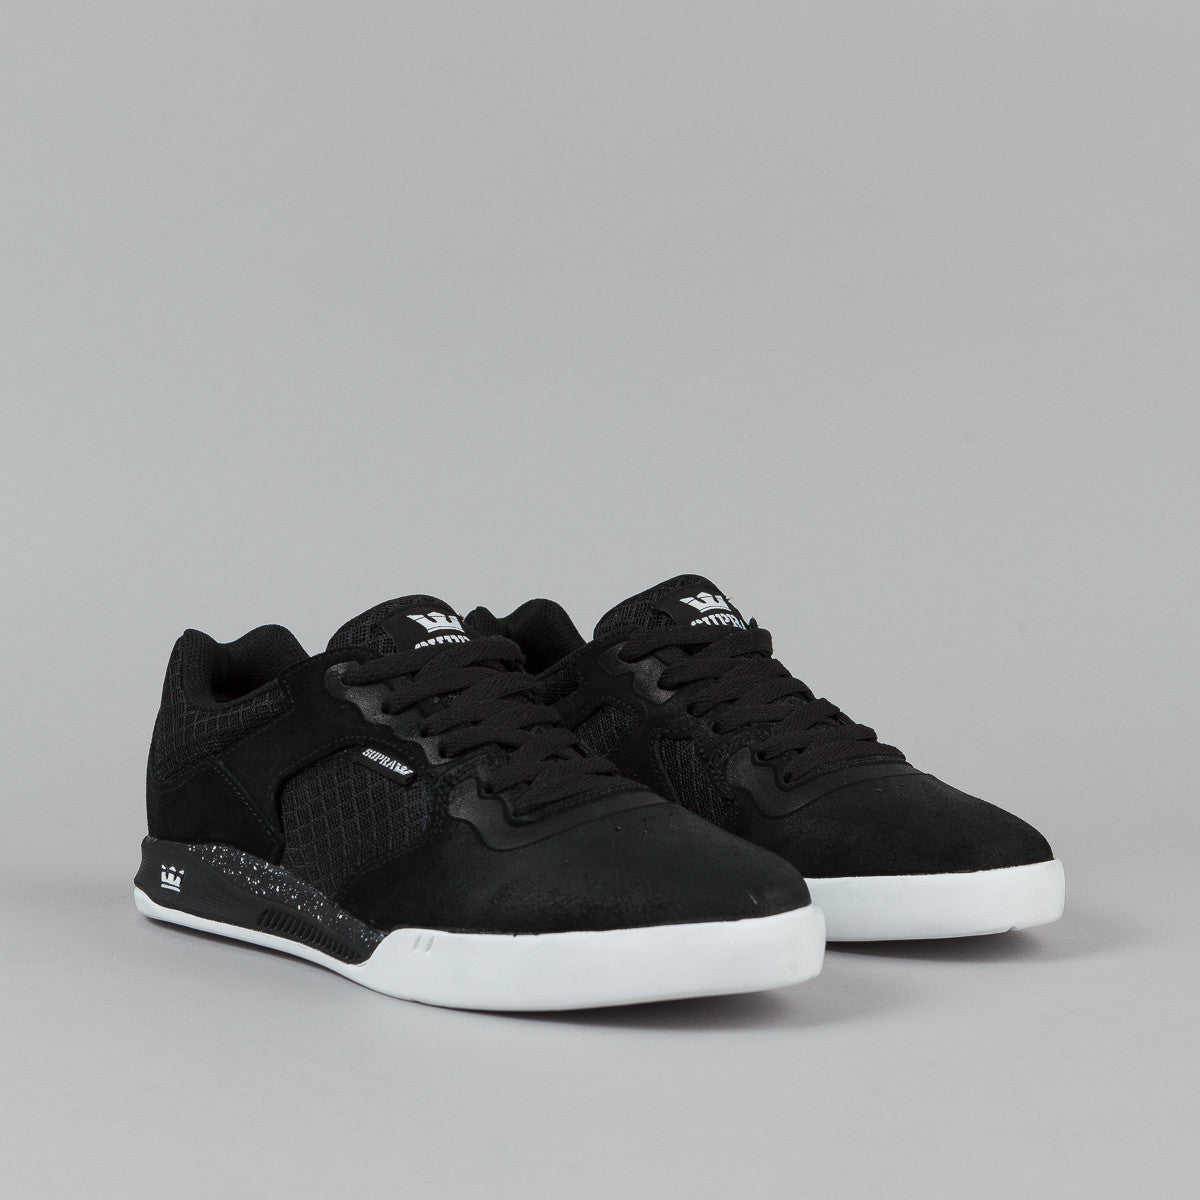 Supra Avex Shoes - Black / White